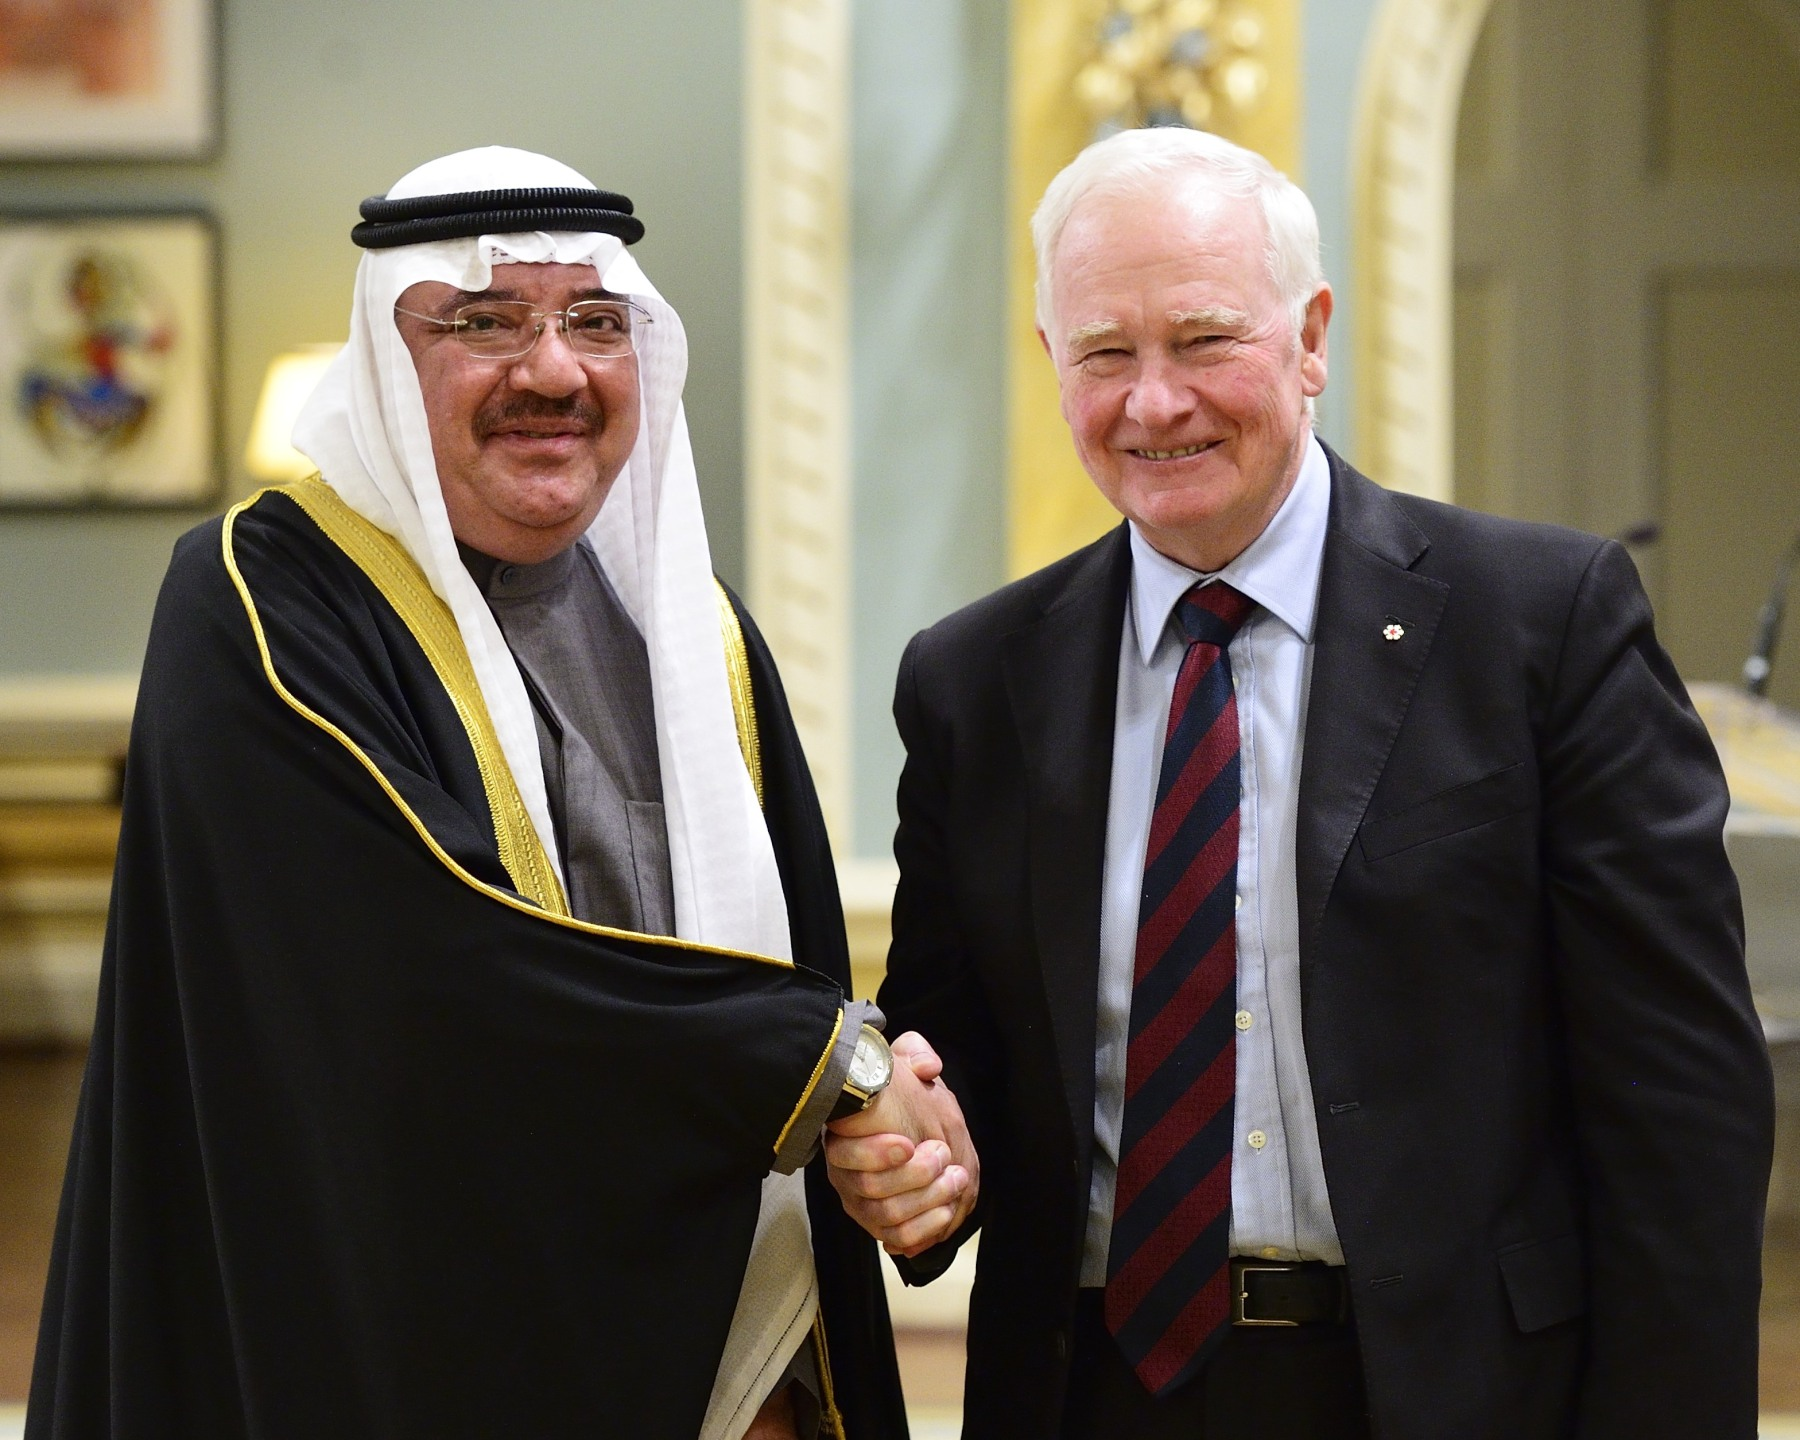 """Kuwait and Canada are marking 50 years of diplomatic relations in 2015. My very first international visit as governor general was a State visit to Kuwait in February 2011,"" said His Excellency."